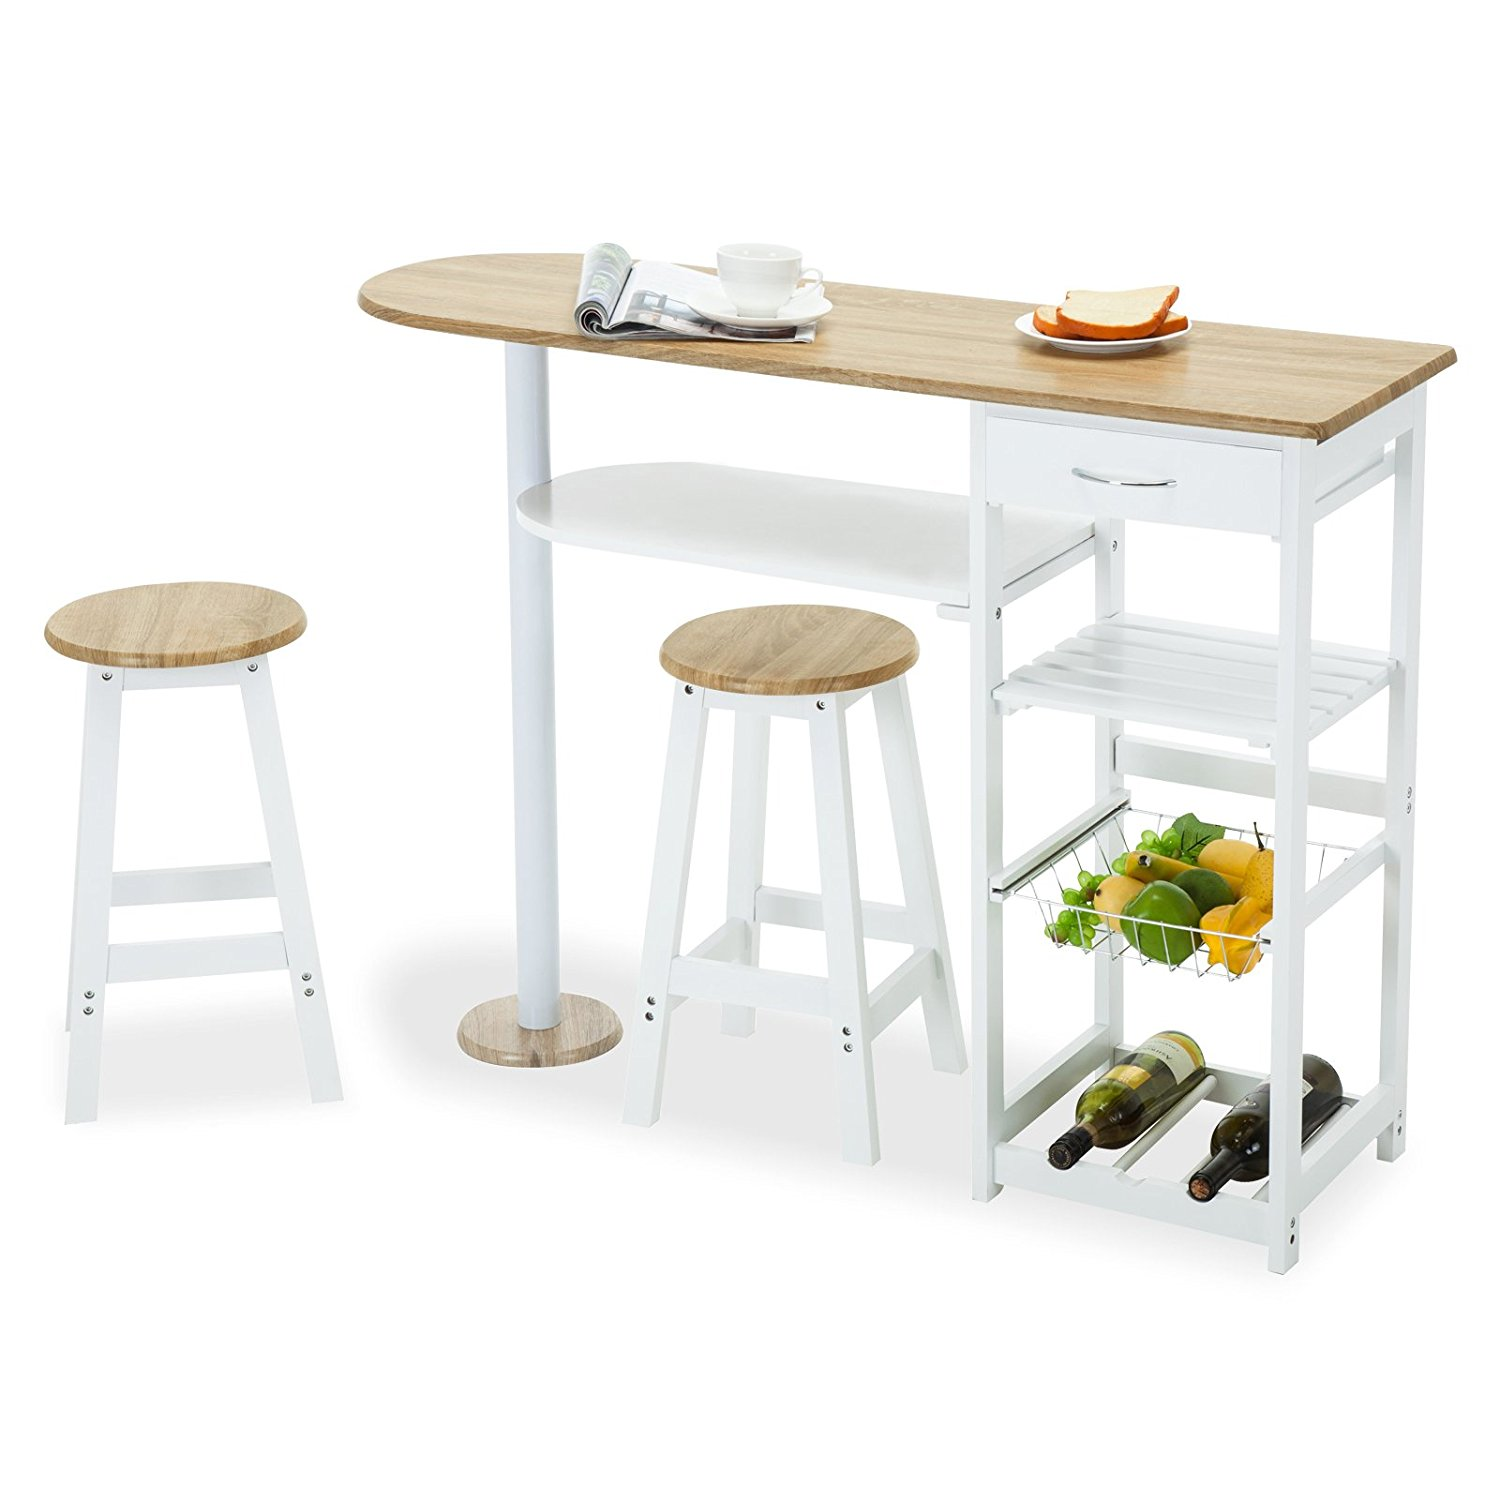 Kitchen Island Cart With Stools 4 family kitchen island cart trolley portable rolling storage